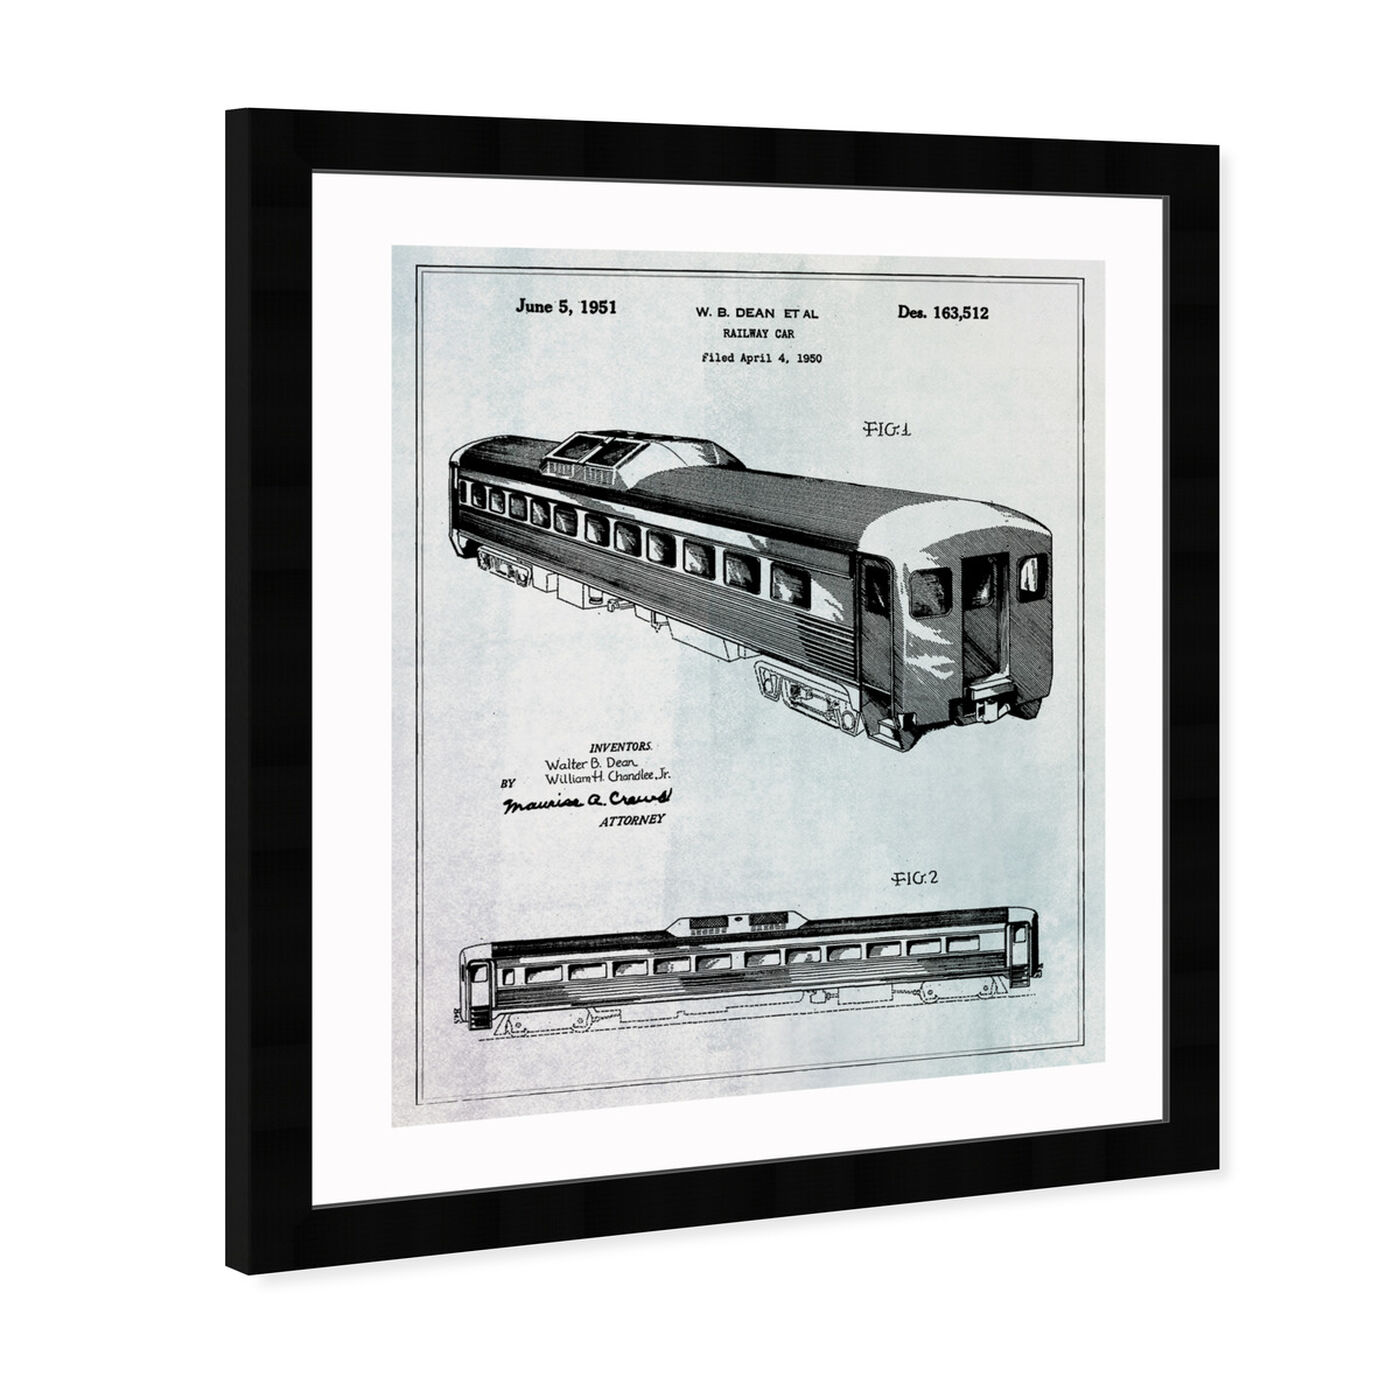 Angled view of Railway Car 1951 featuring transportation and trains art.